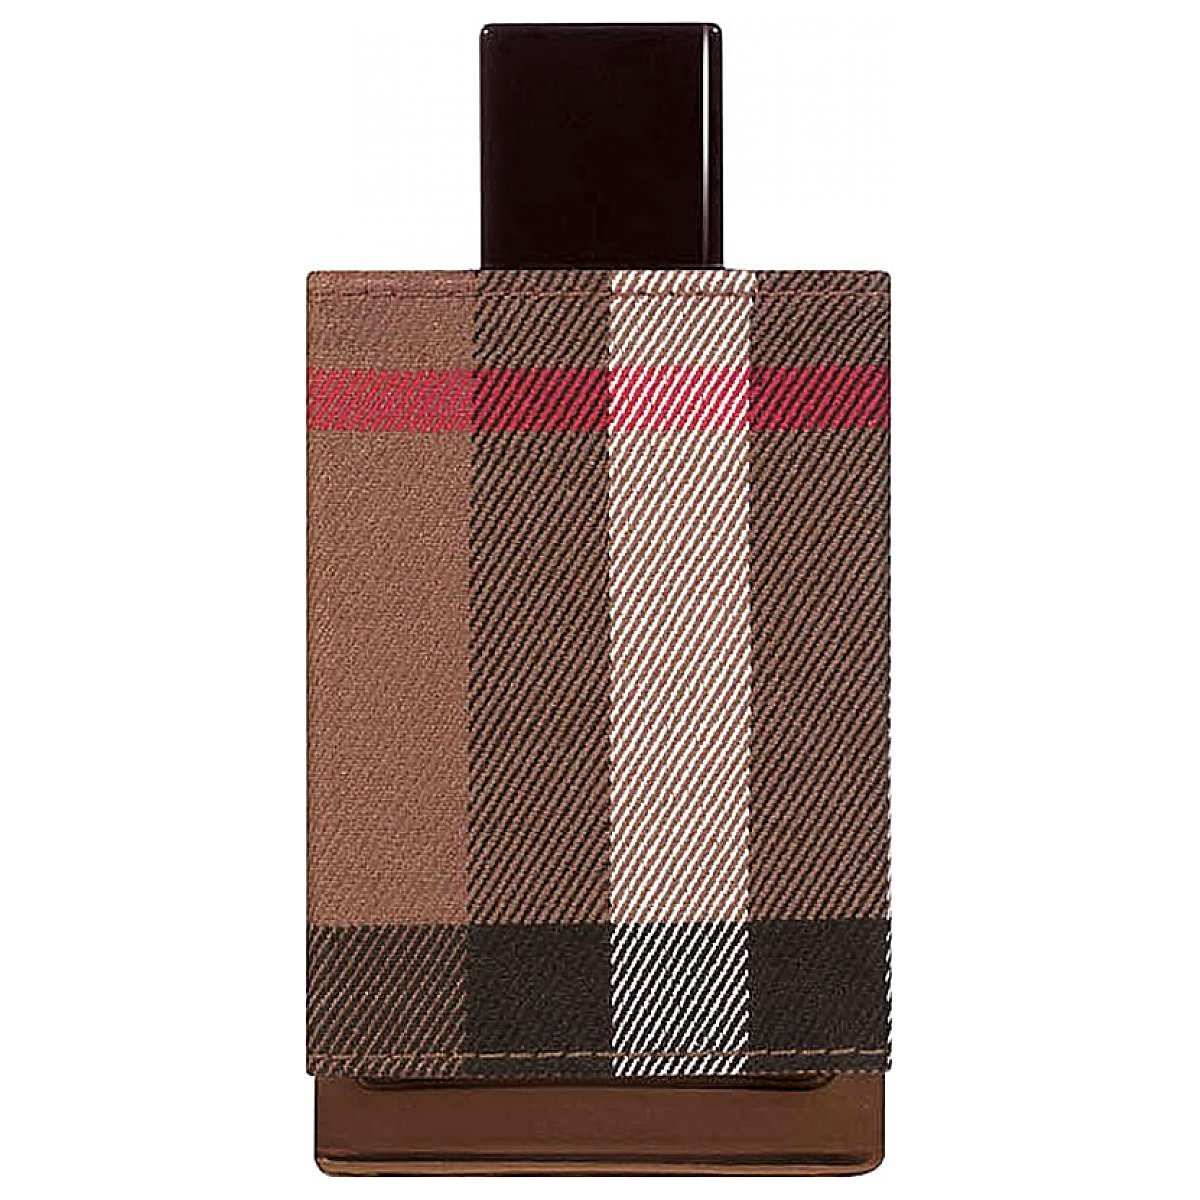 Zestaw upominkowy EDT 50ml + balsam A S 50ml. Burberry London for Men 1 1 6ca04f7a2bf